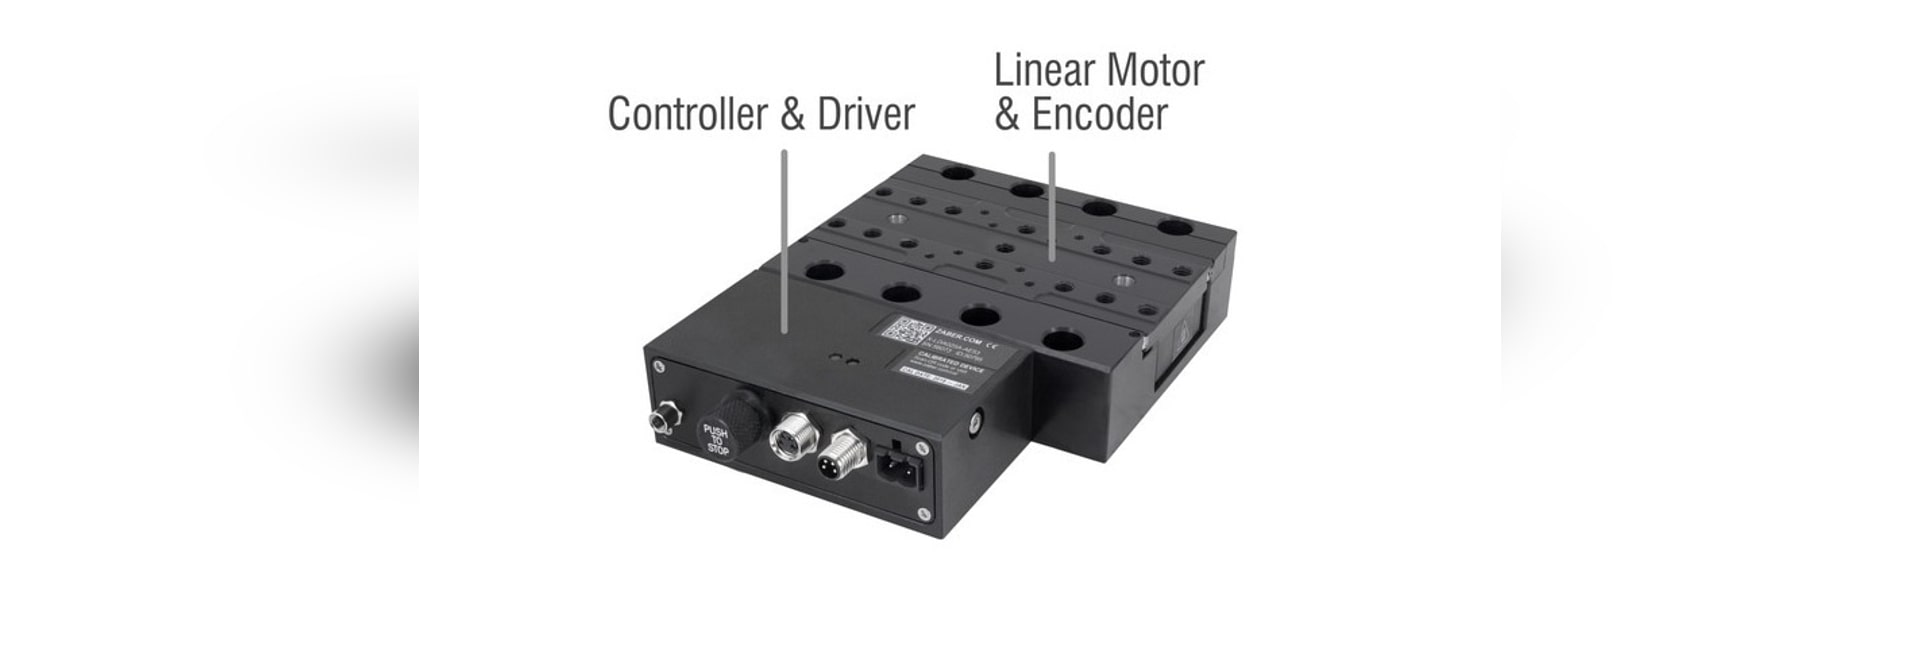 X-LDA-AE Linear Motor Stages with Built-in Controllers